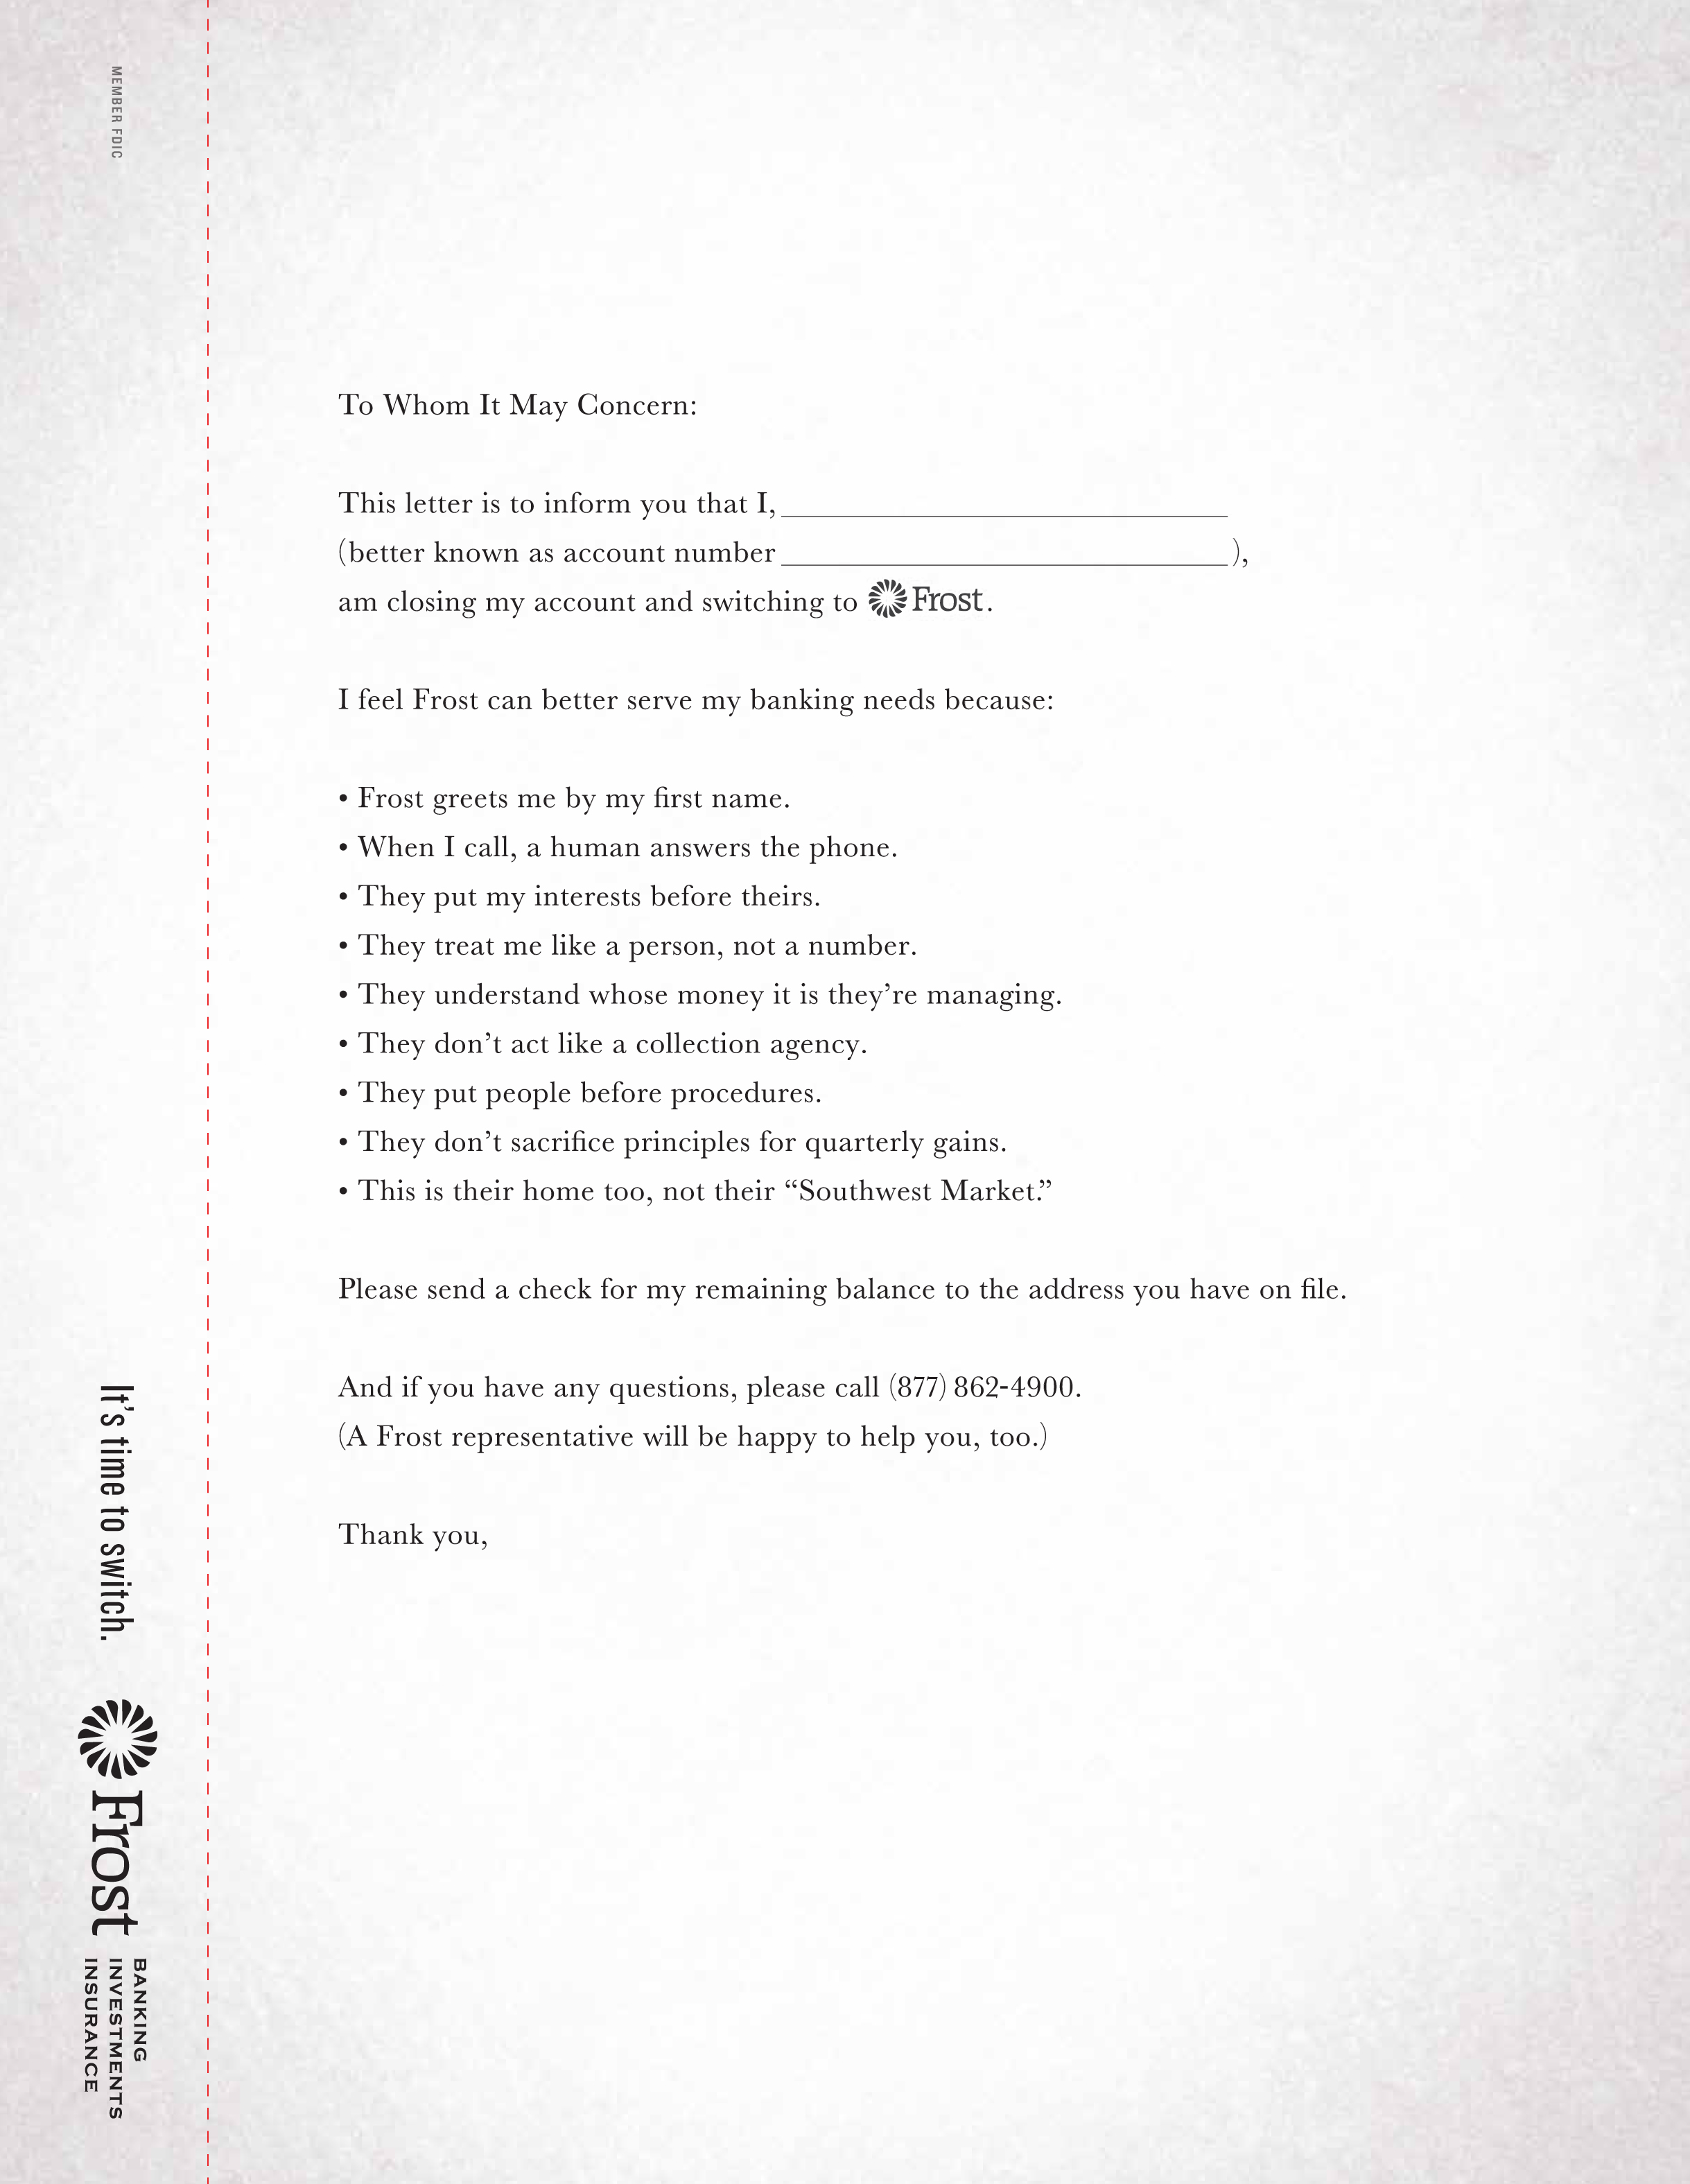 Frost | Resignation Letter  We also turned print ads into resignation letters, making it very easy for people to break up with their big banks and switch to Frost.